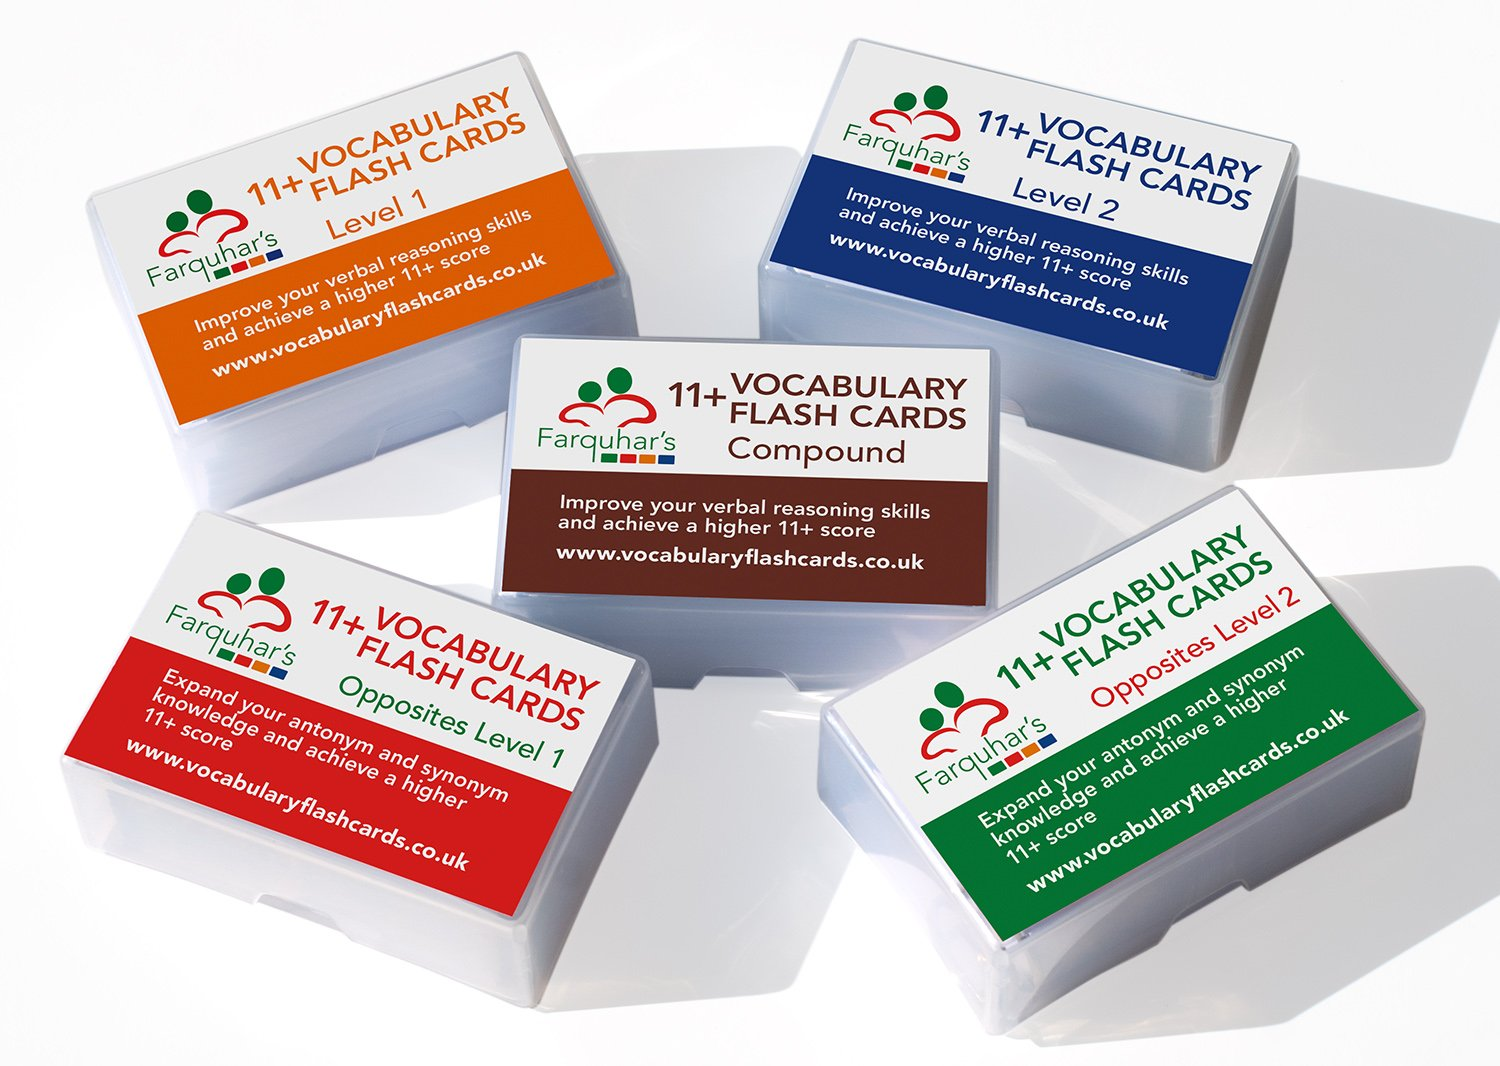 11+ Vocabulary Flash Cards - Set of 5 (1000 key words with definitions)